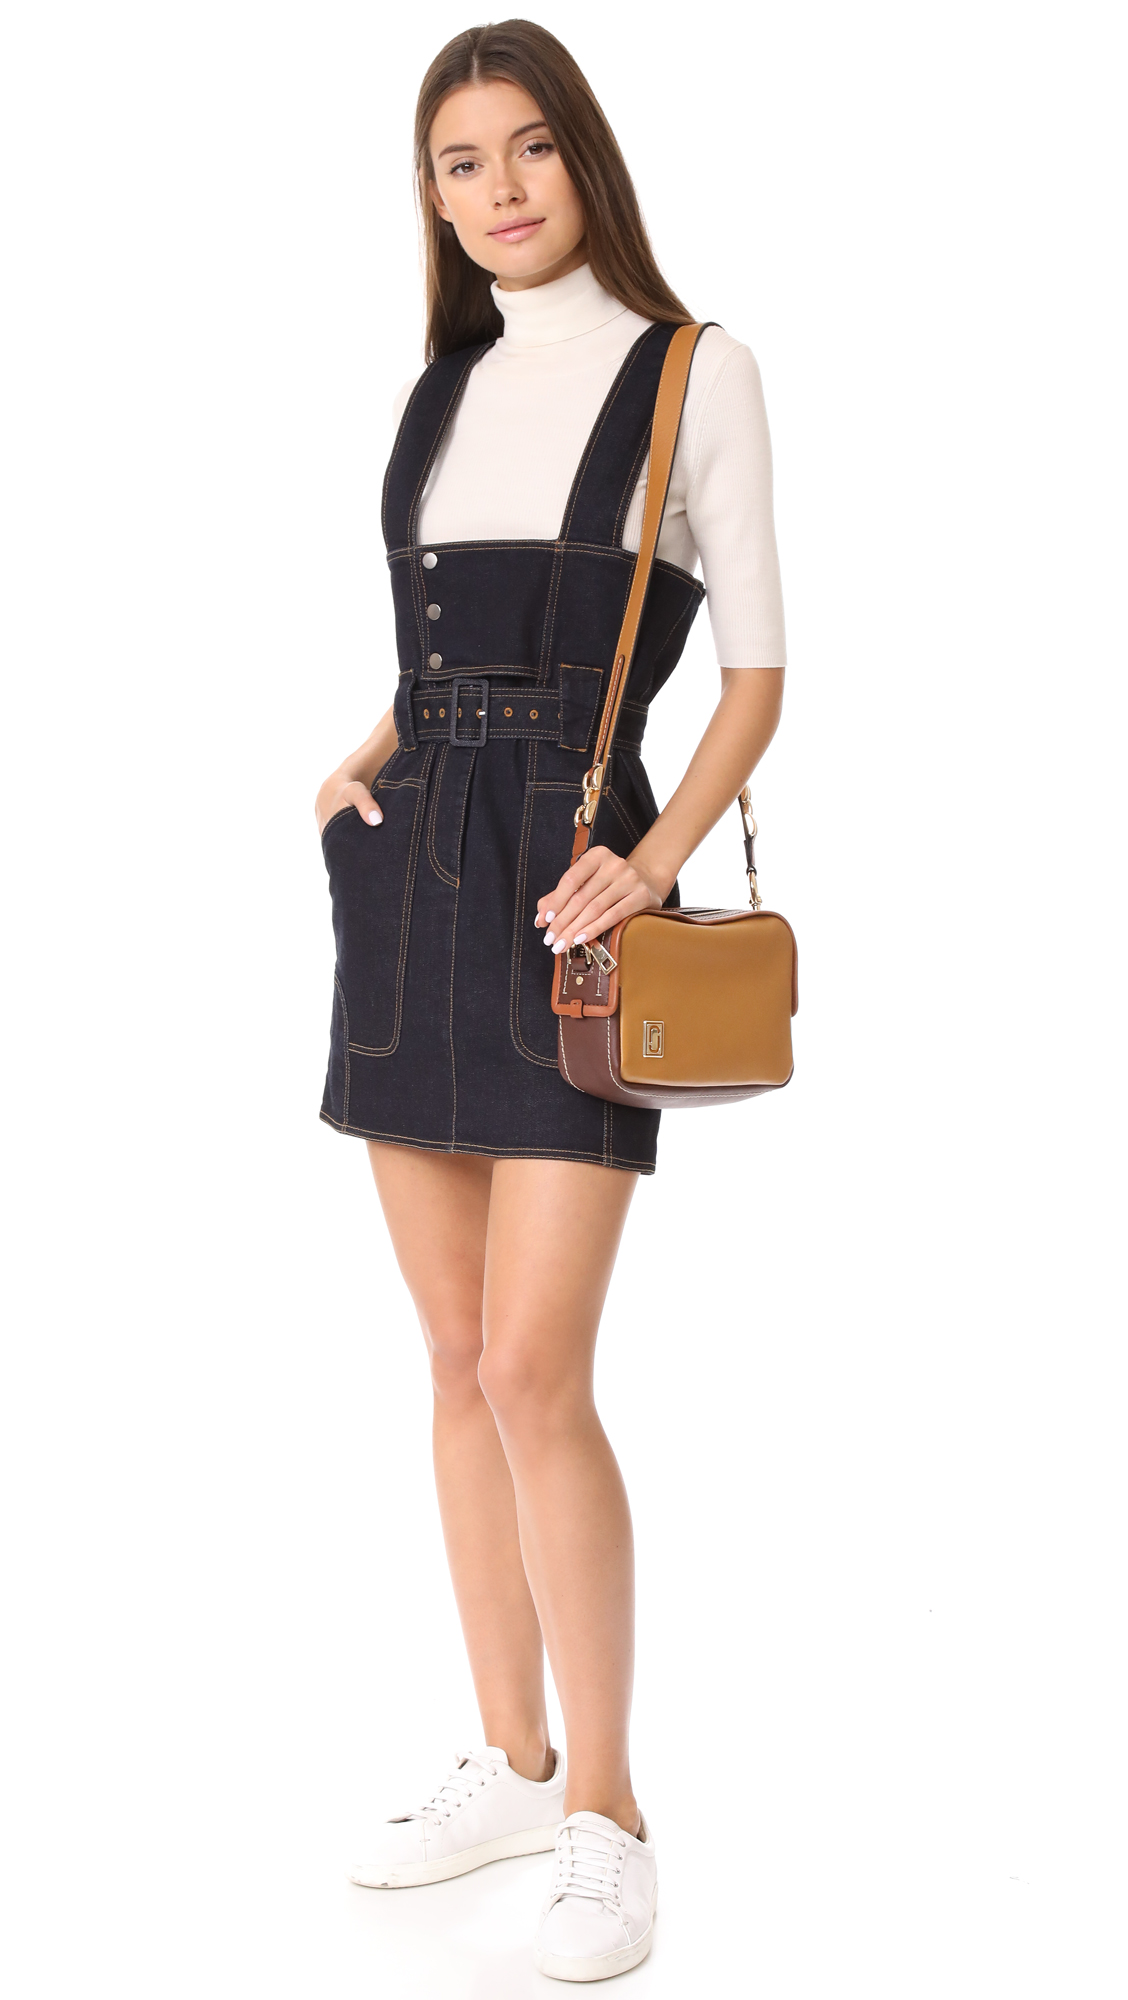 078bf60185 The top zip opens to a lined interior with 2 pockets. Adjustable shoulder  strap. Dust bag included.Leather  Cowhide.Weight  20oz   0.57kg.Imported